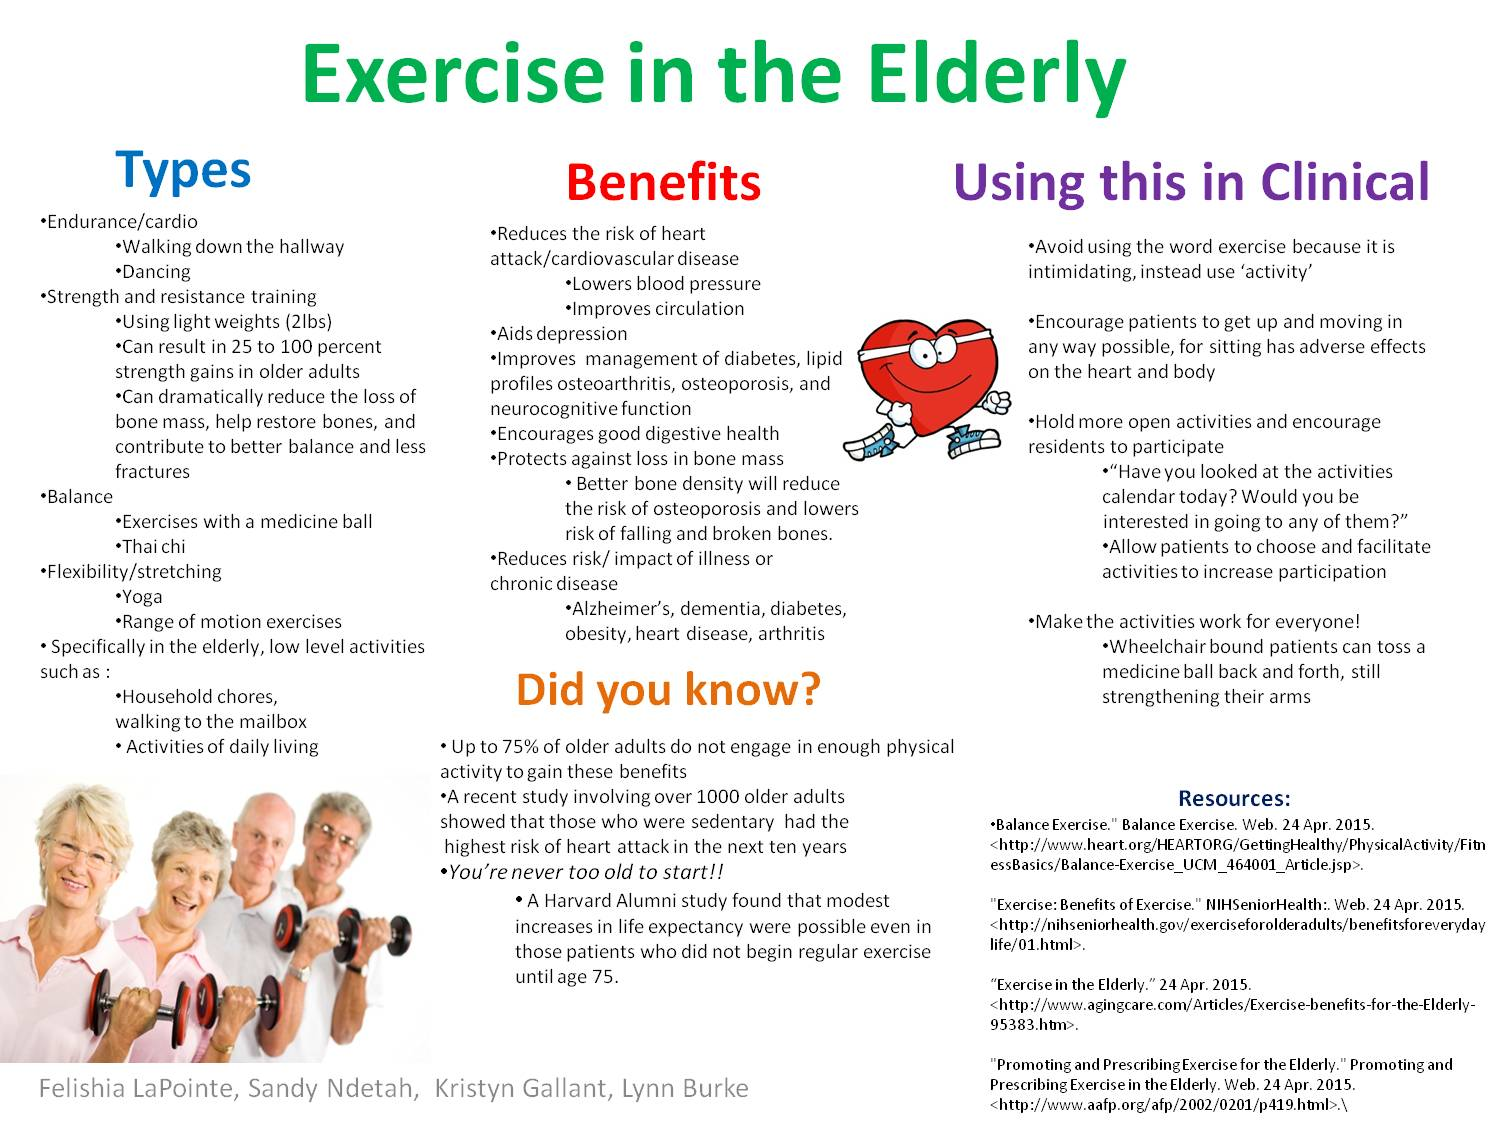 Exercise In The Elderly by fah8